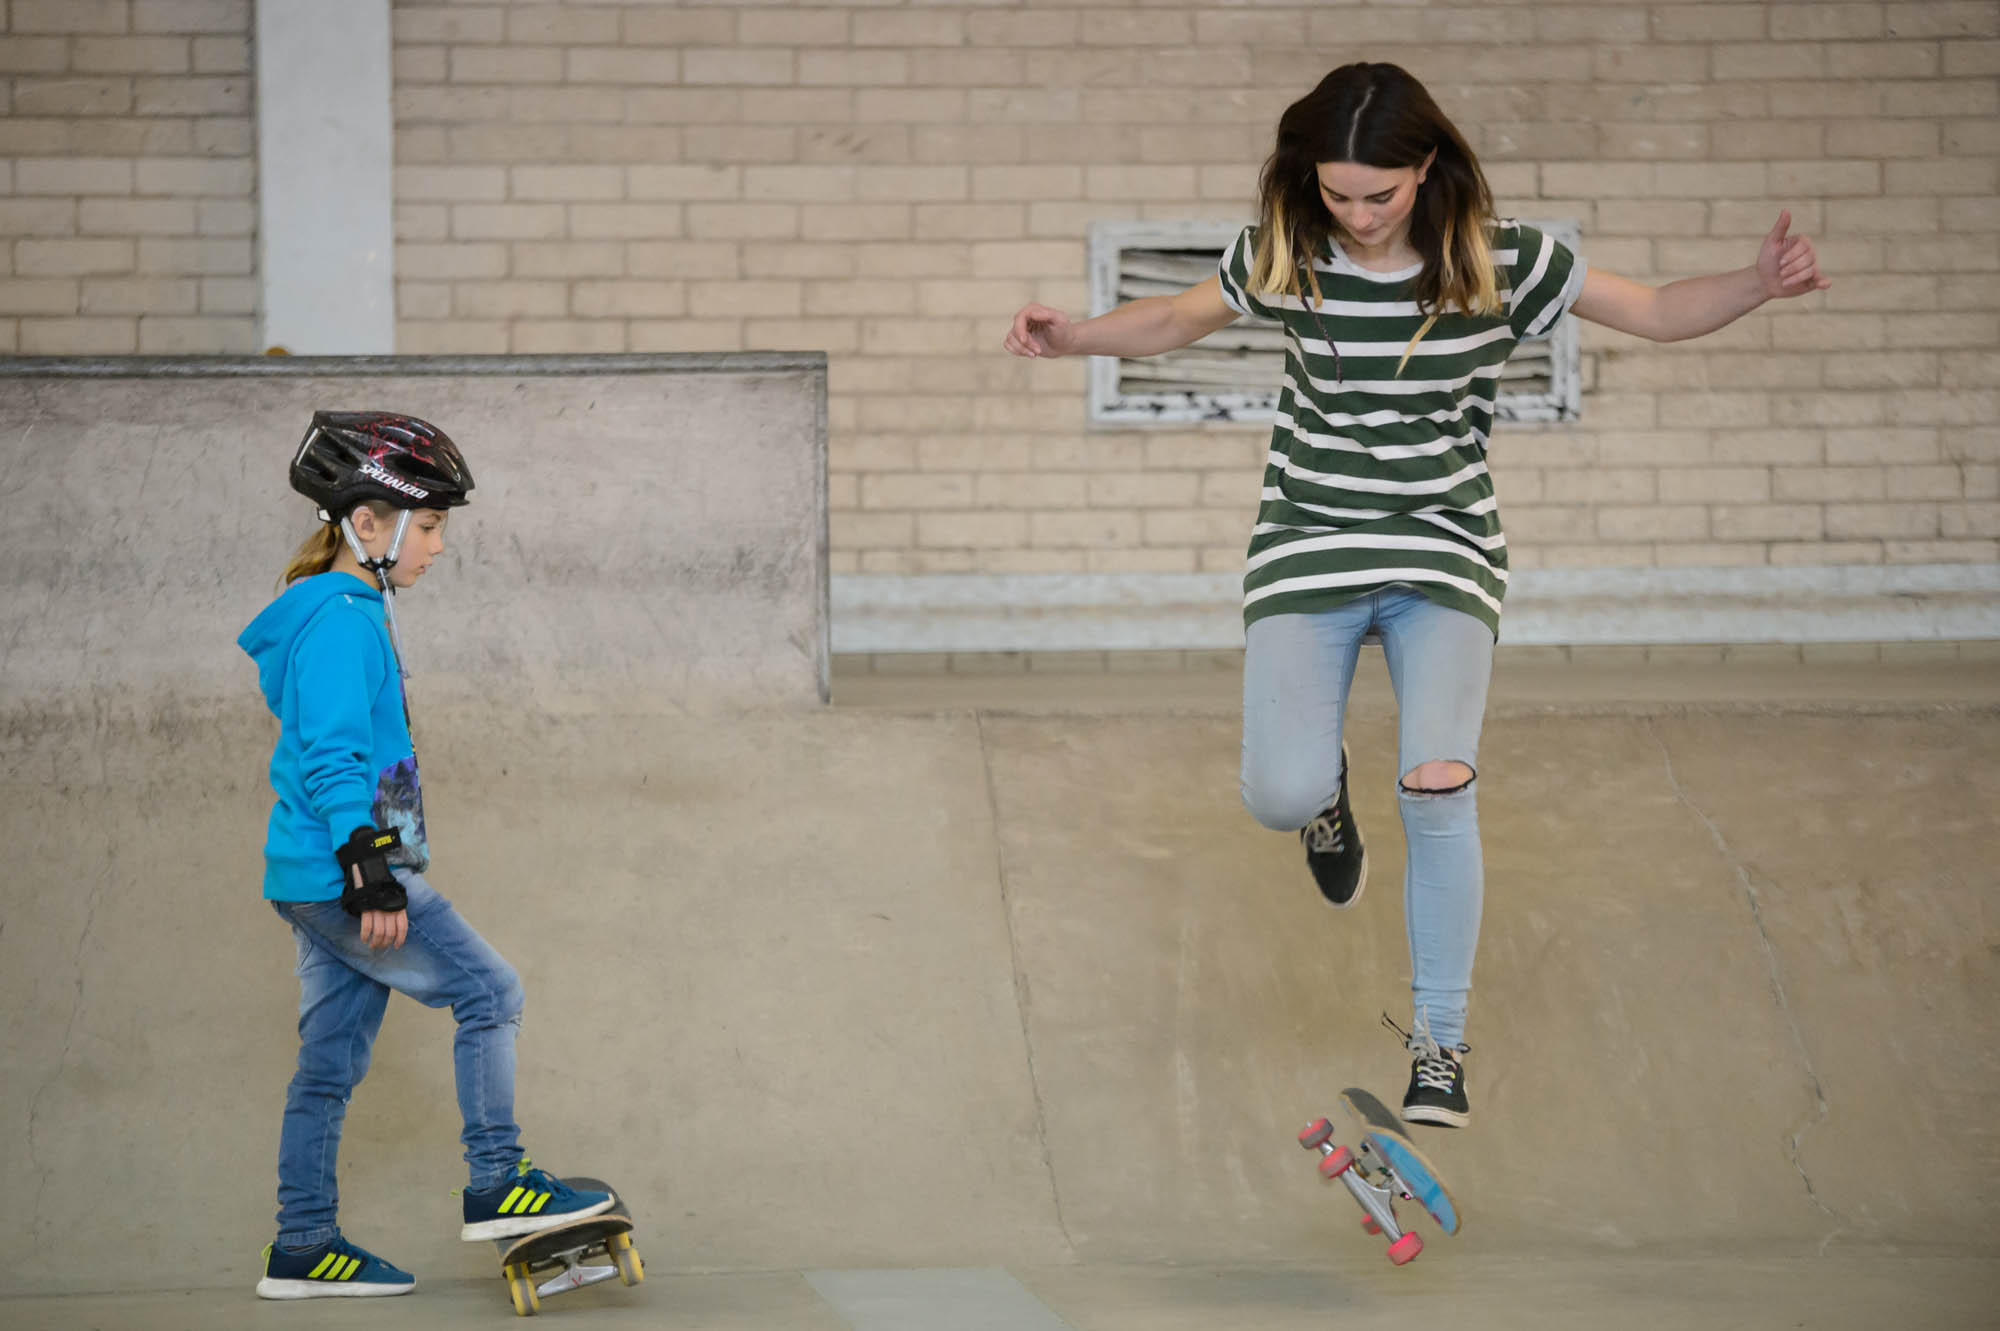 An older teenage girl practices skateboarding tricks next to a younger girl